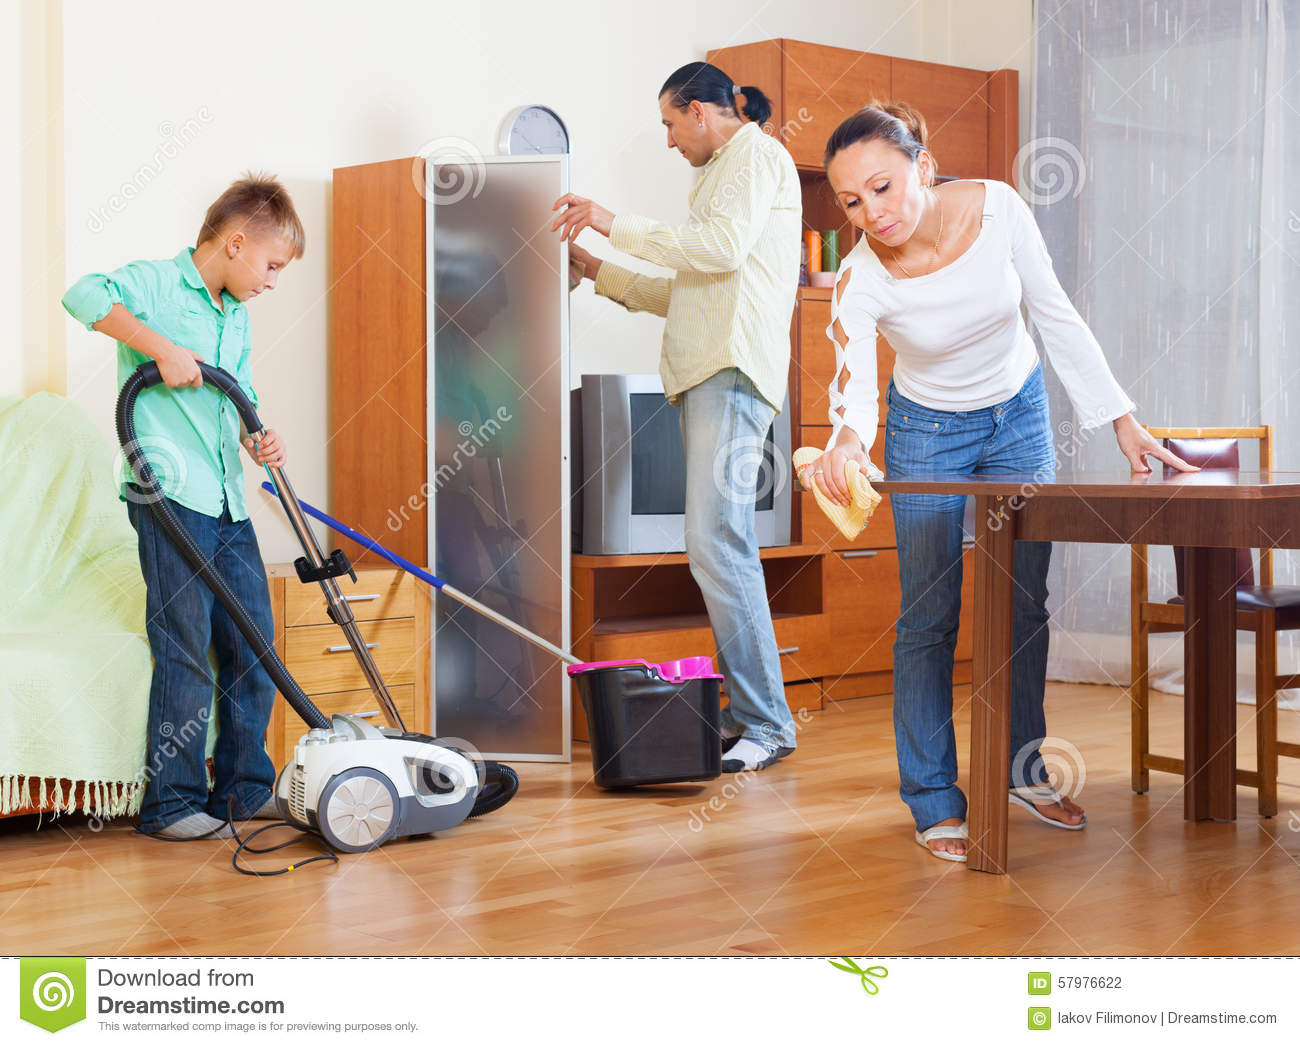 cleaning living room clipart. cleaning living room clipart